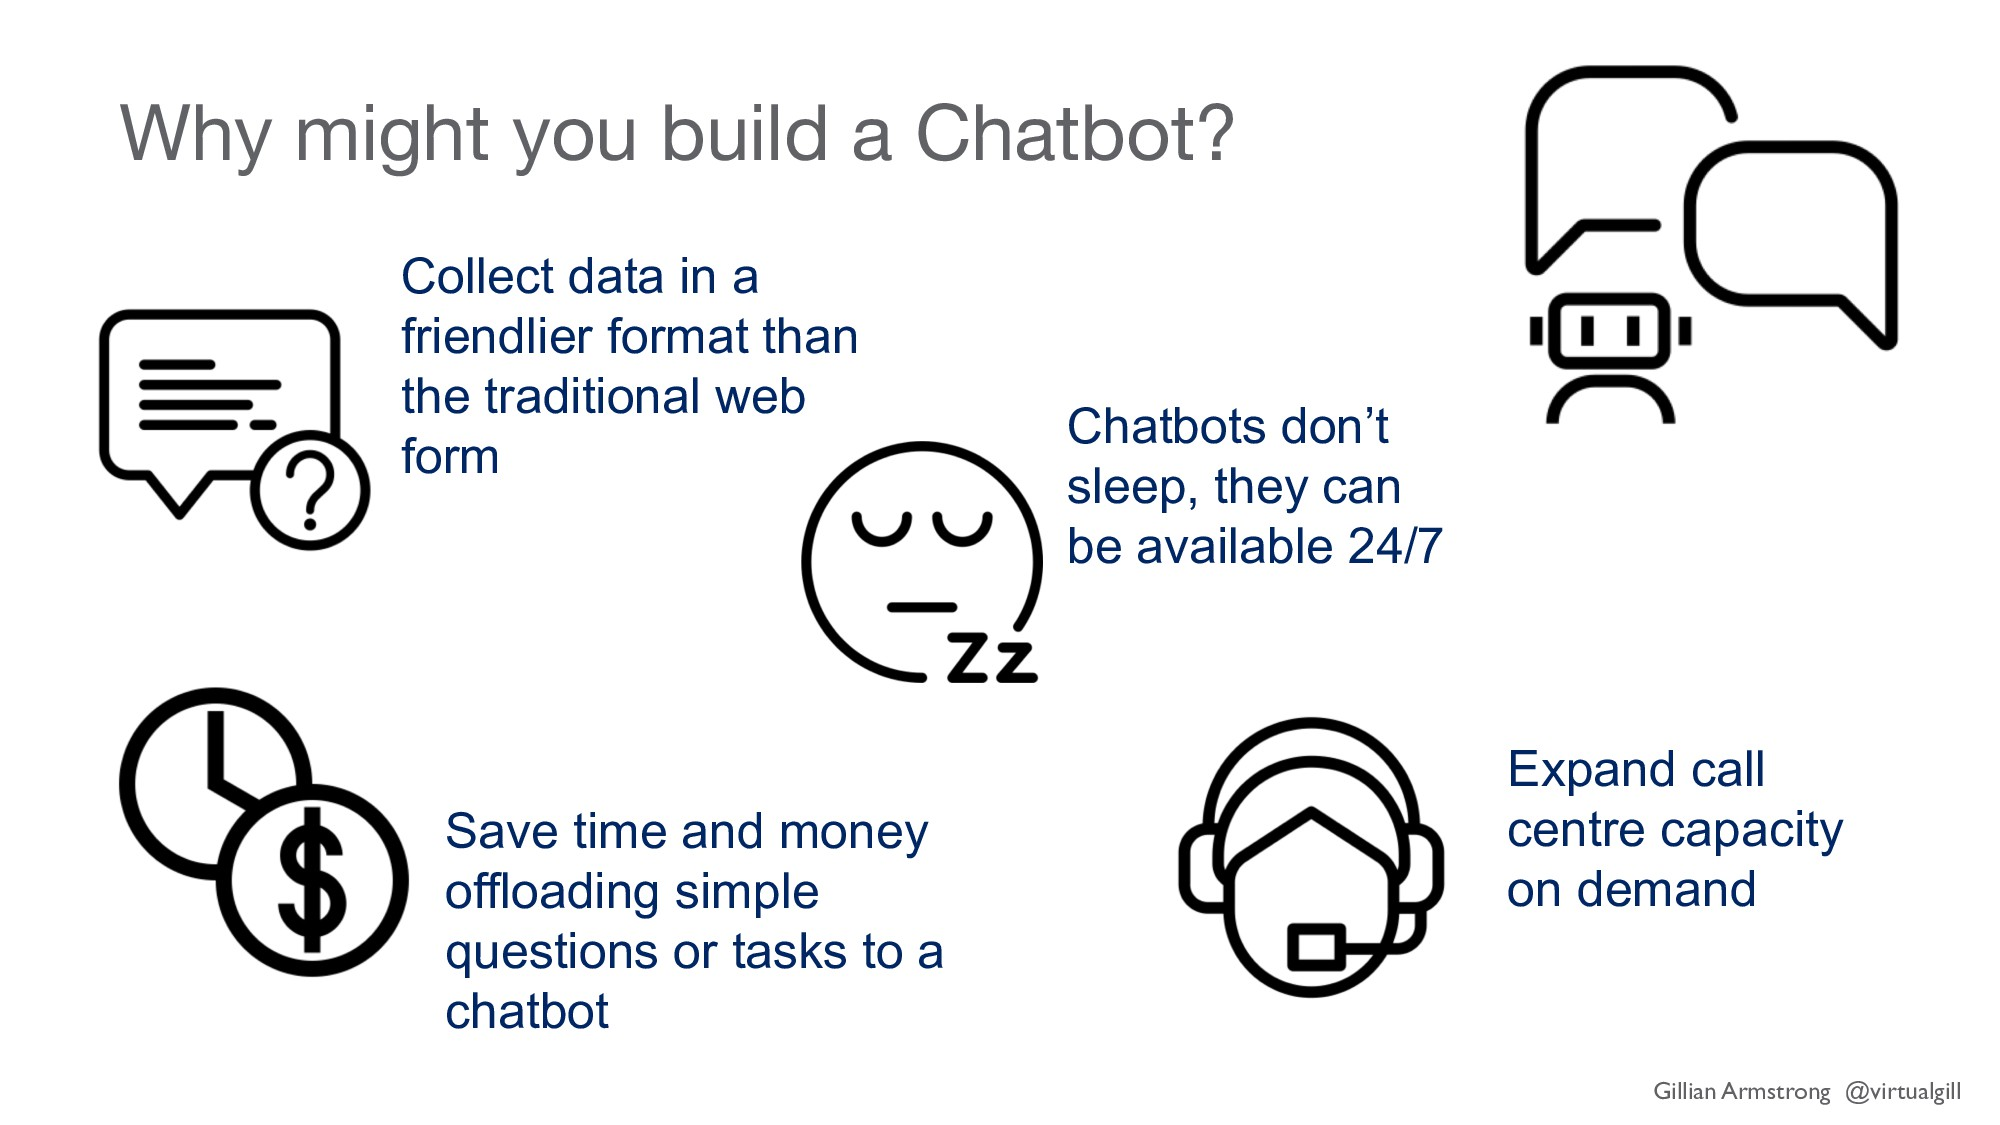 Why might you build a Chatbot? Expand call cent...